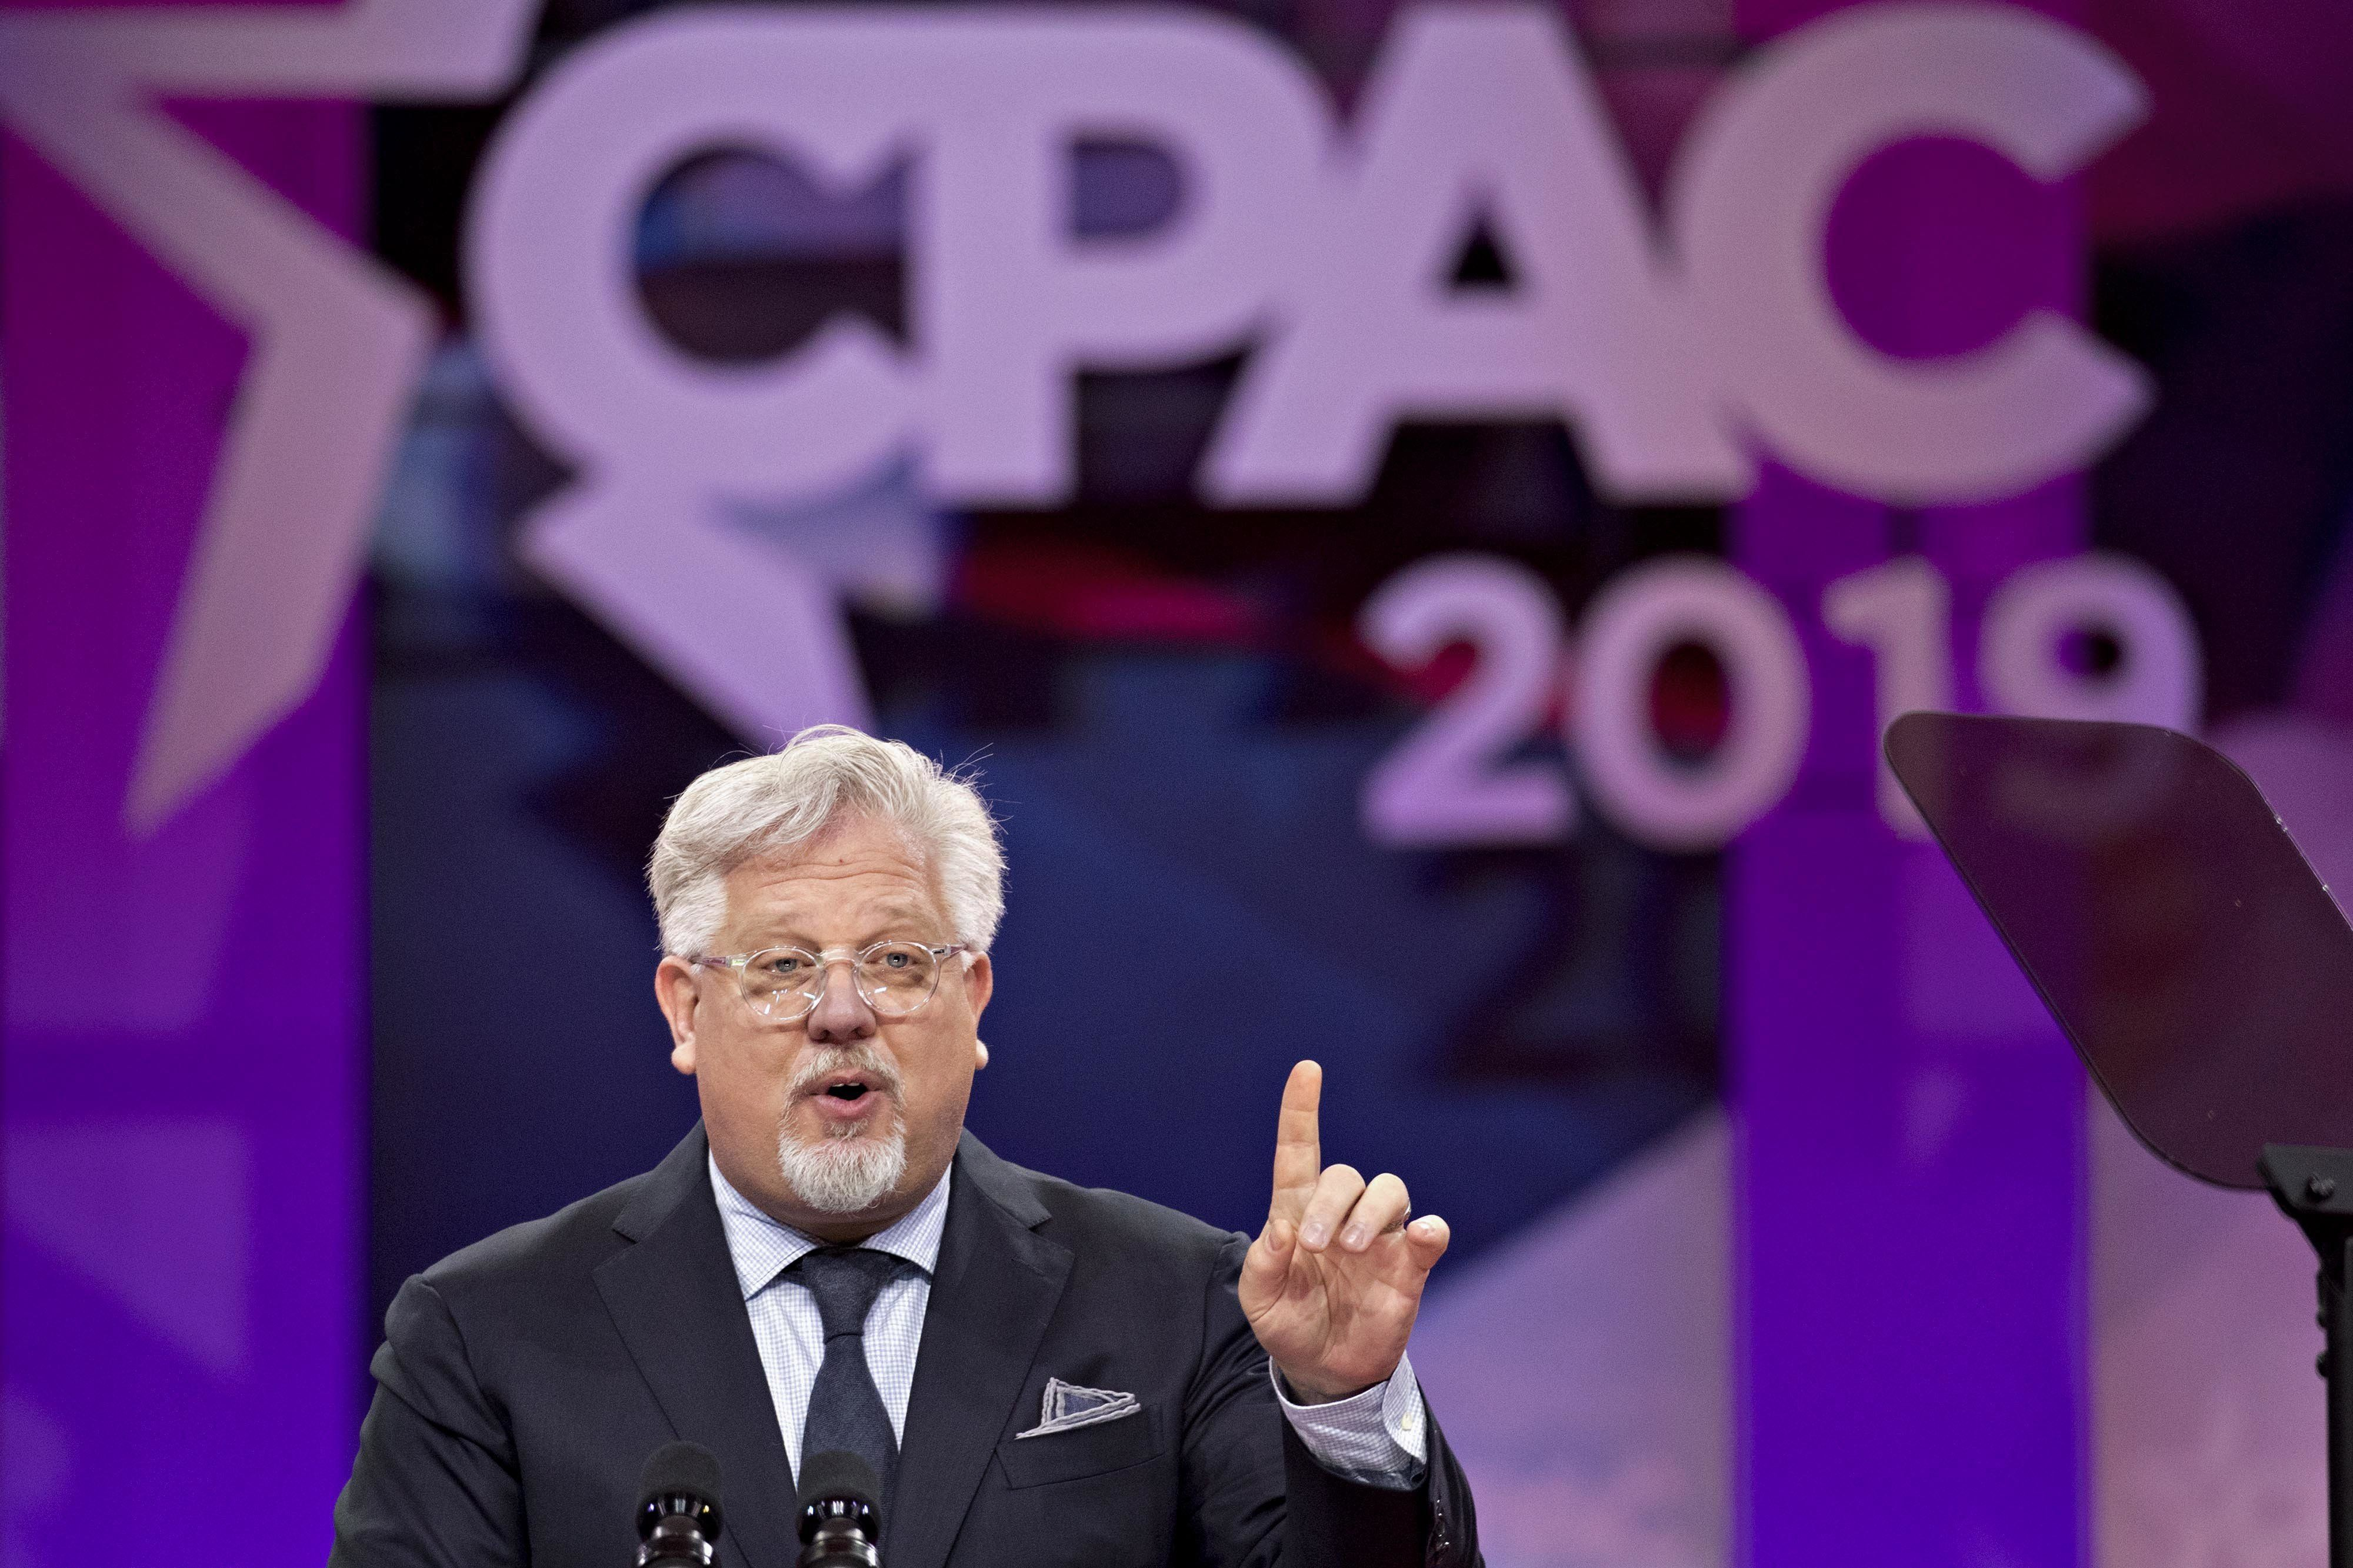 Television personality Glenn Beck speaks during the Conservative Political Action Conference (CPAC) in National Harbor, Maryland, U.S., on Friday, March 1, 2019. President Trump will attend this year's Conservative Political Action Conference on his return from a summit with North Korea leader Kim Jong Un in Hanoi. Photographer: Andrew Harrer/Bloomberg via Getty Images